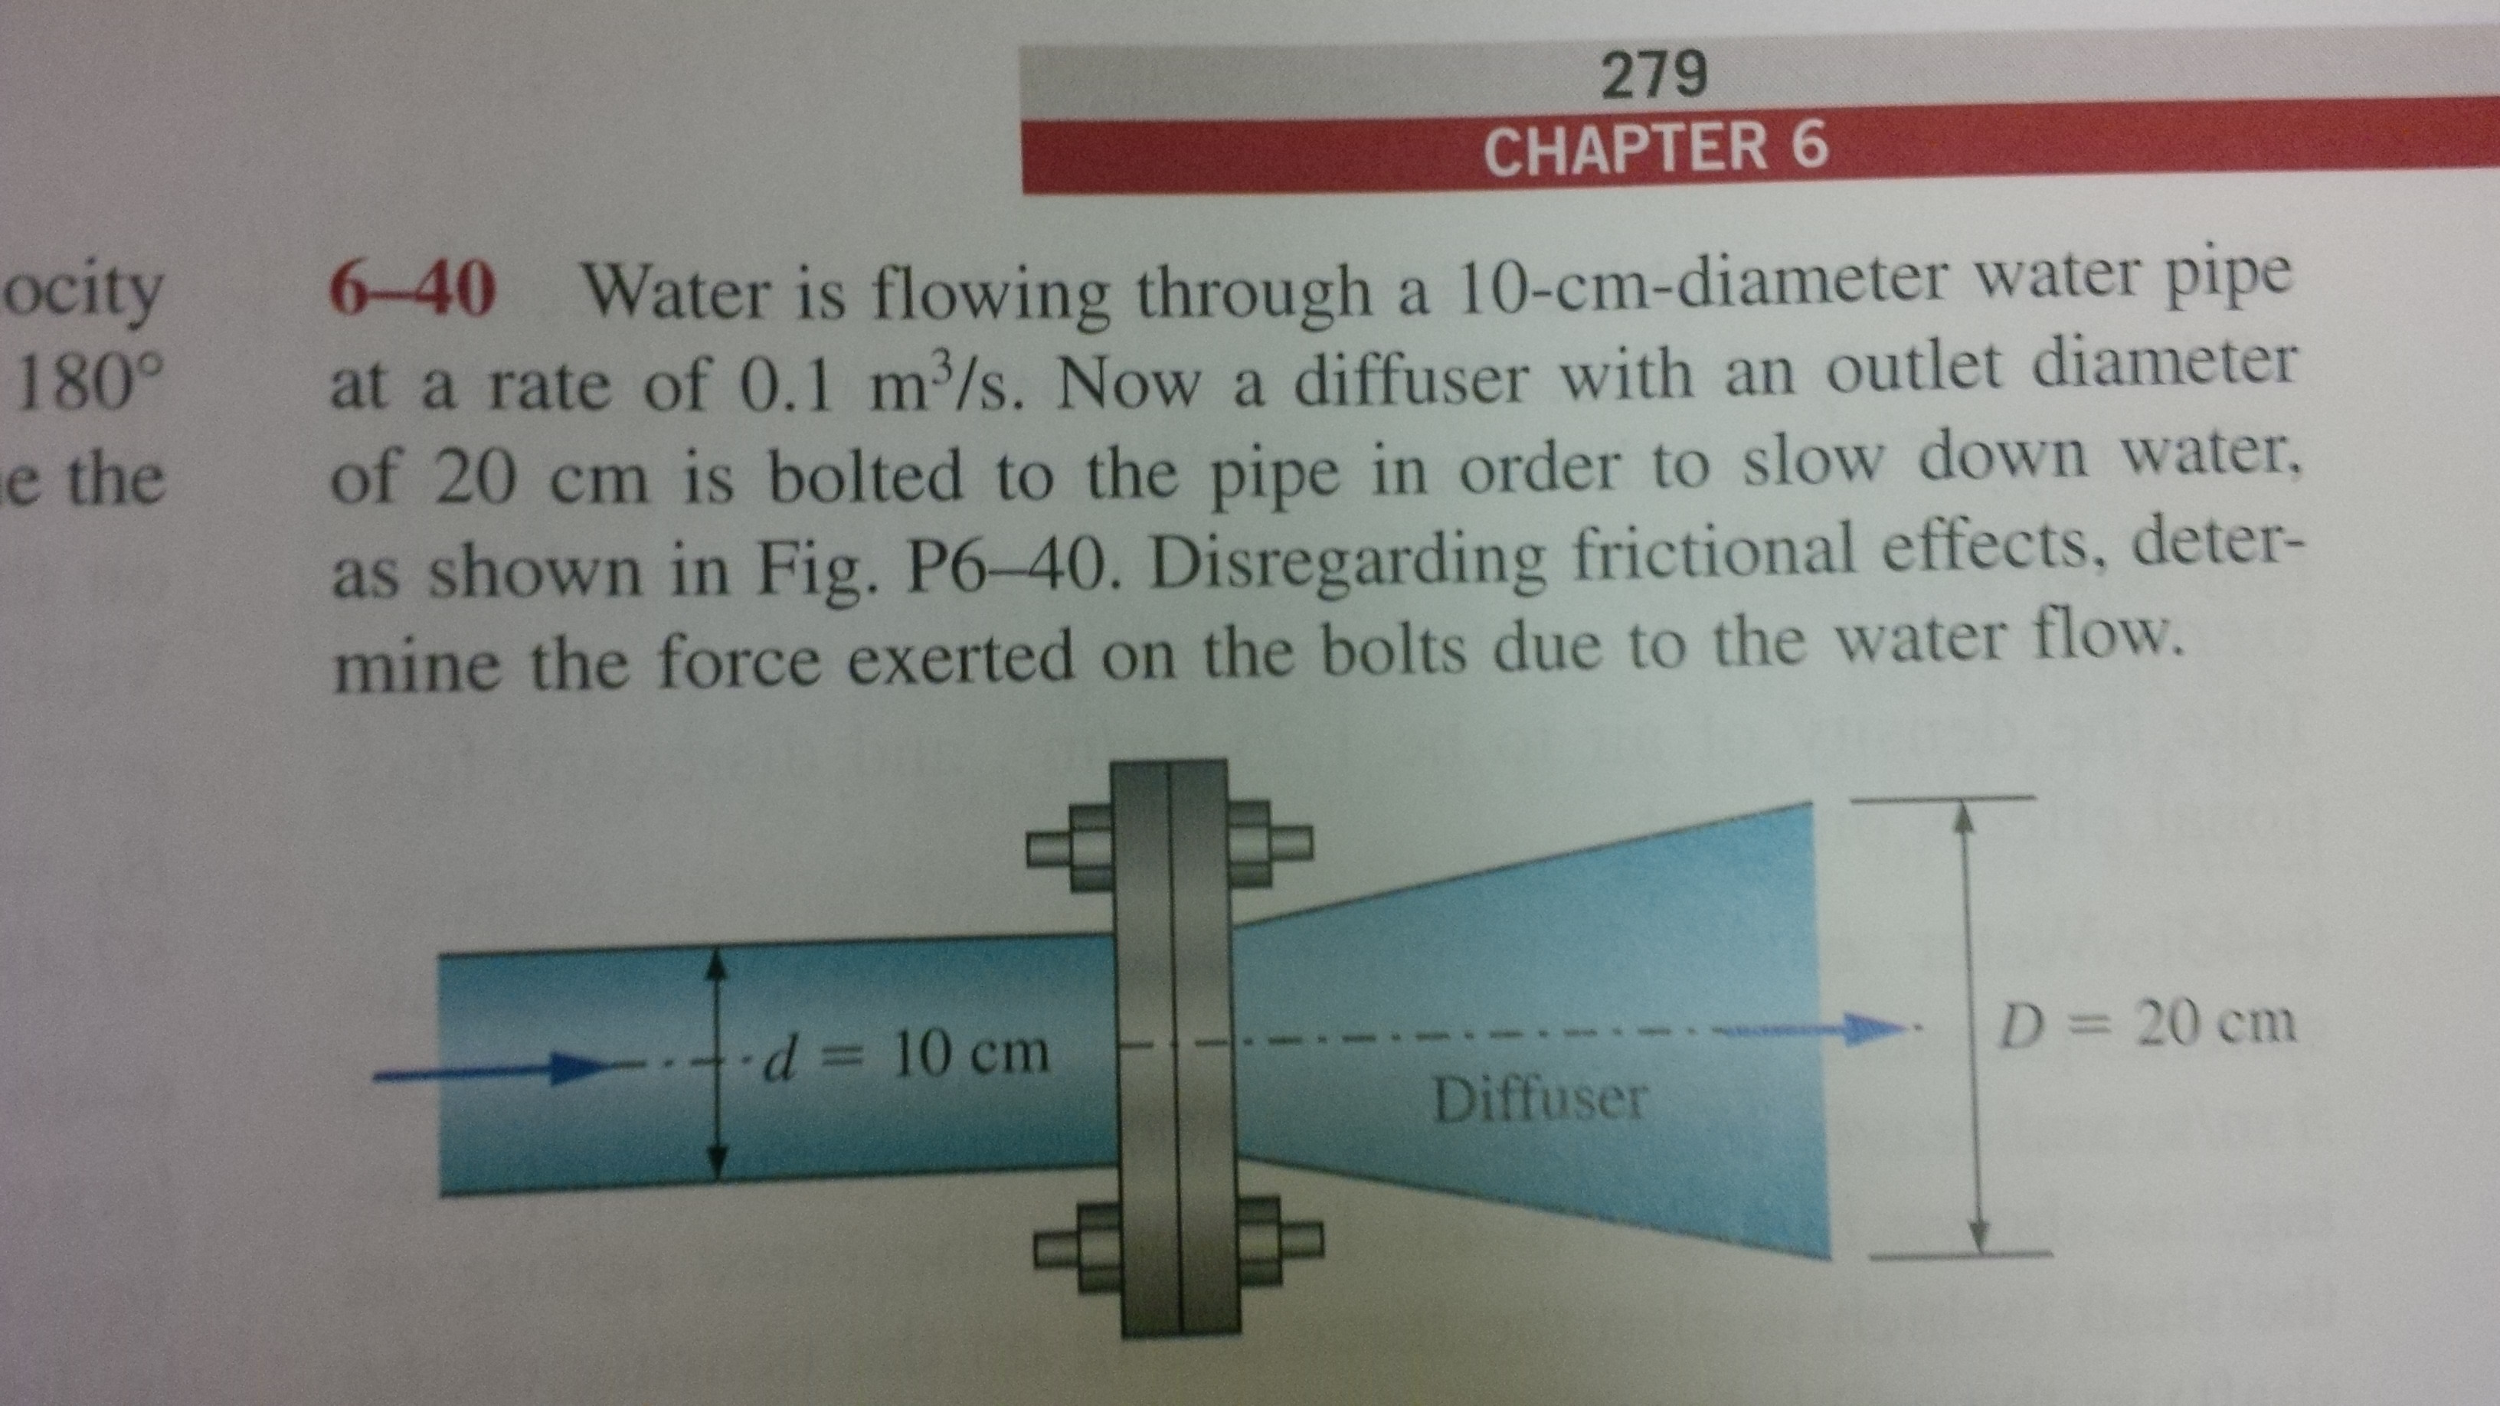 Now a diffuser with an outlet diameter of 20 cm is bolted to the pipe in order to slow down water, as shown in Fig P6-40. Disregarding frictional effects ...